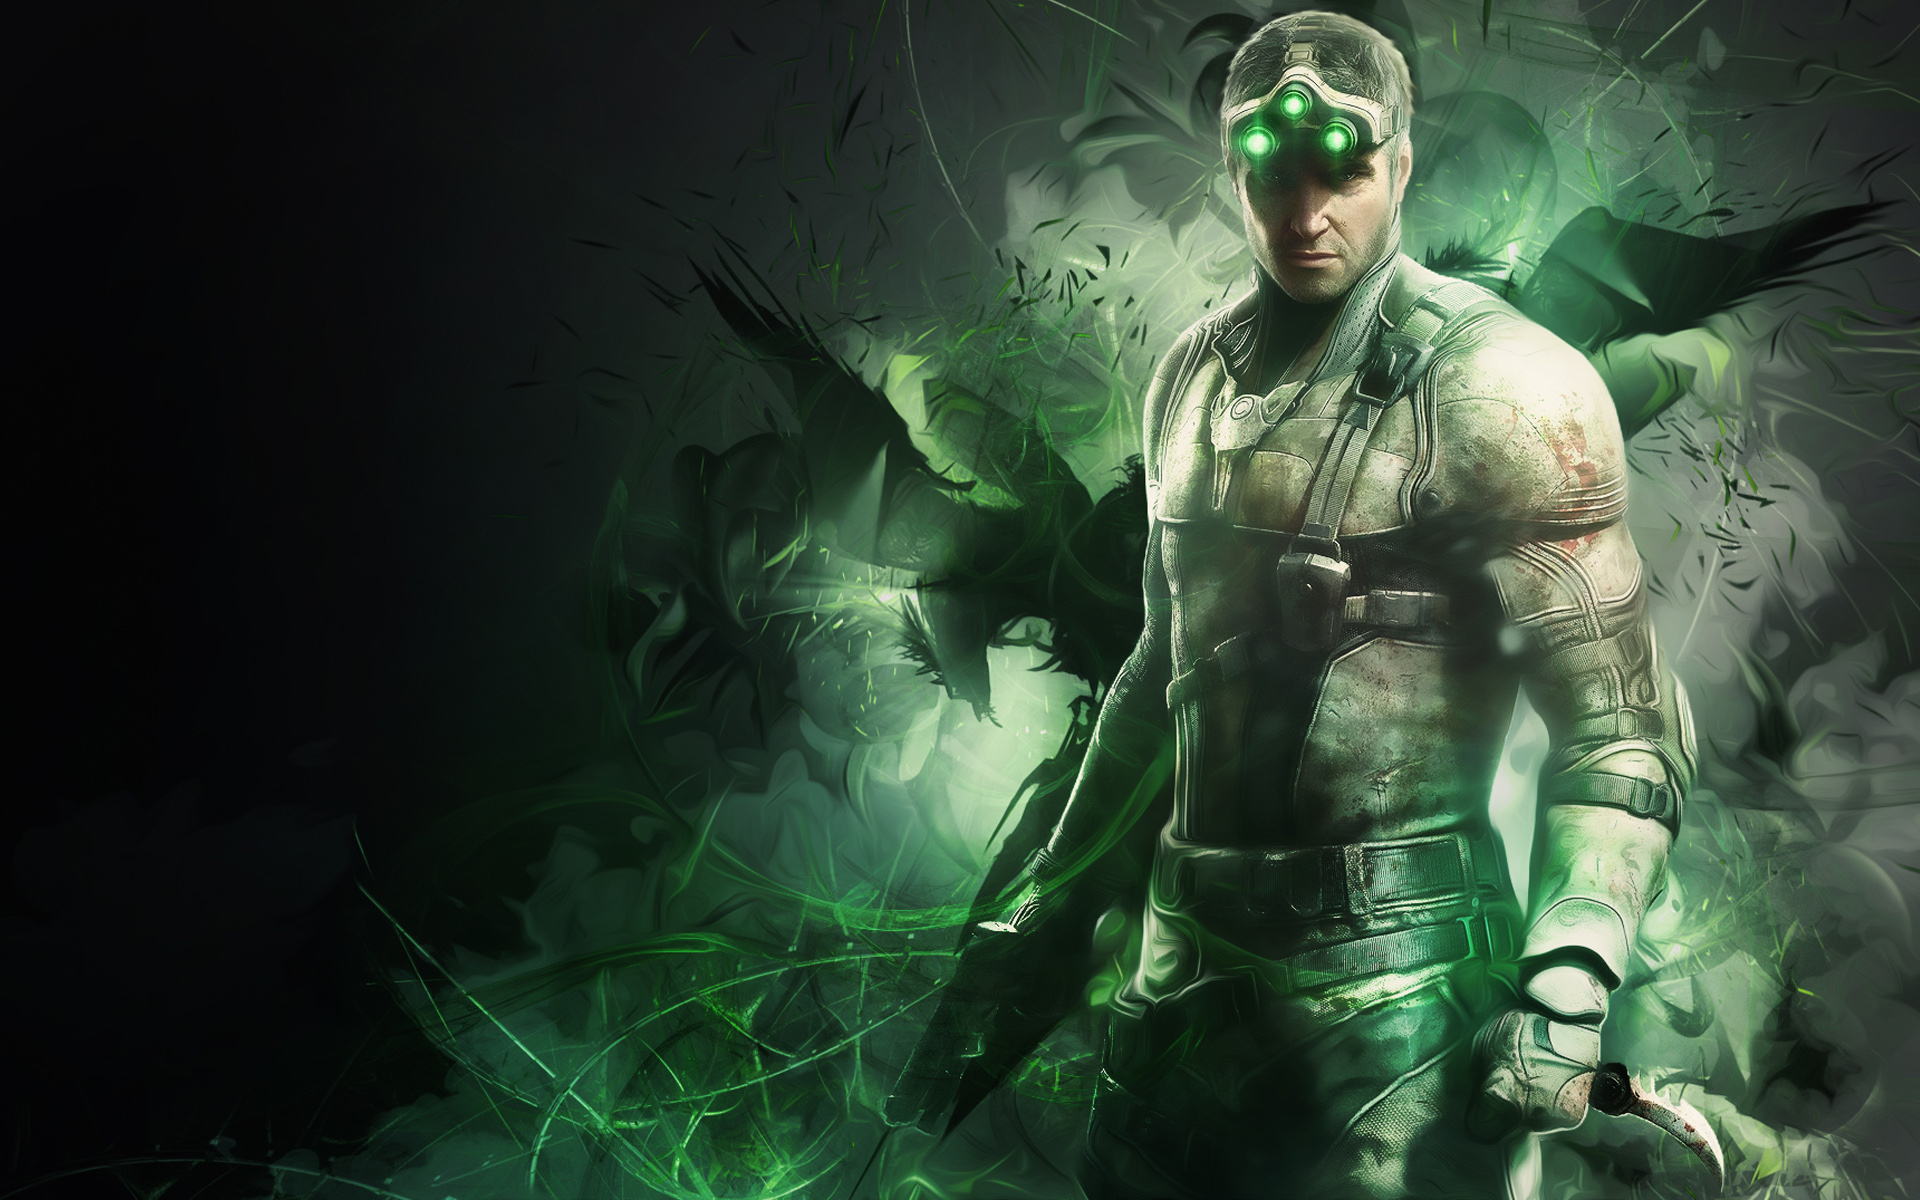 Sam Fisher in Splinter Cell Wallpapers HD Wallpapers 1920x1200